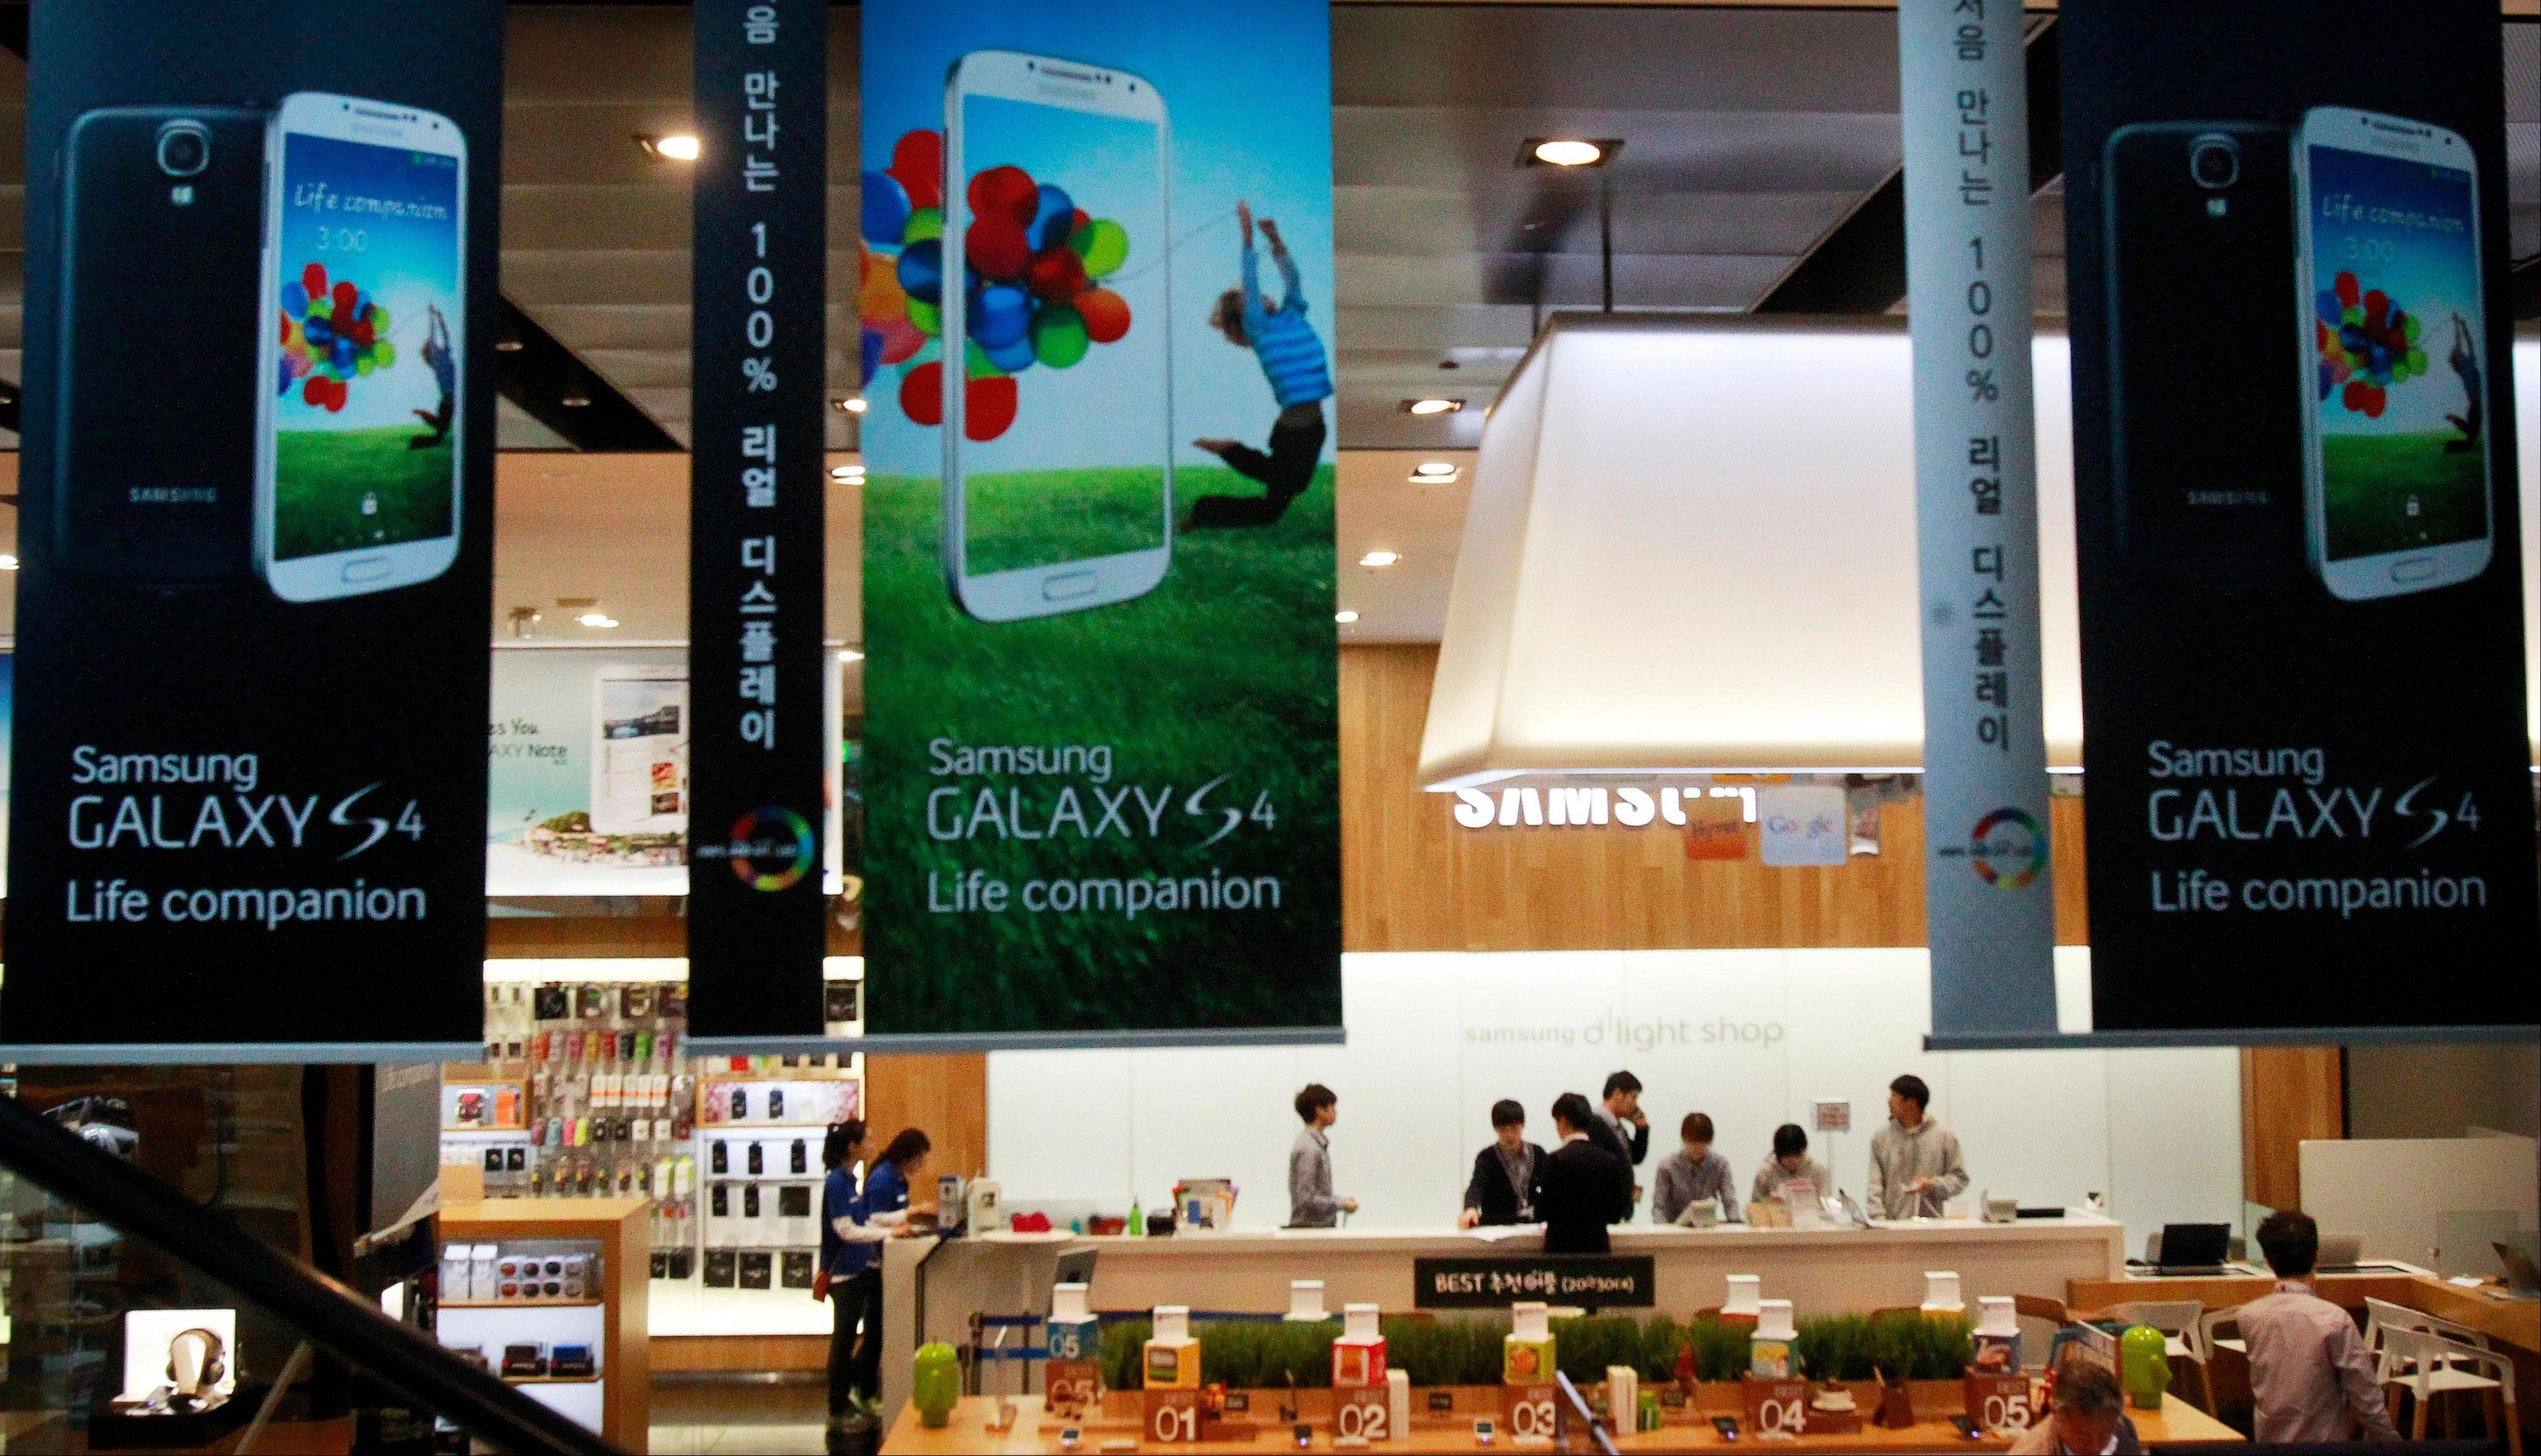 Samsung Electronics Co. said Friday its first-quarter net income jumped to a record high because sales growth in smartphones continued even before the launch of the Galaxy S4 during a typically slow season for the electronics market.